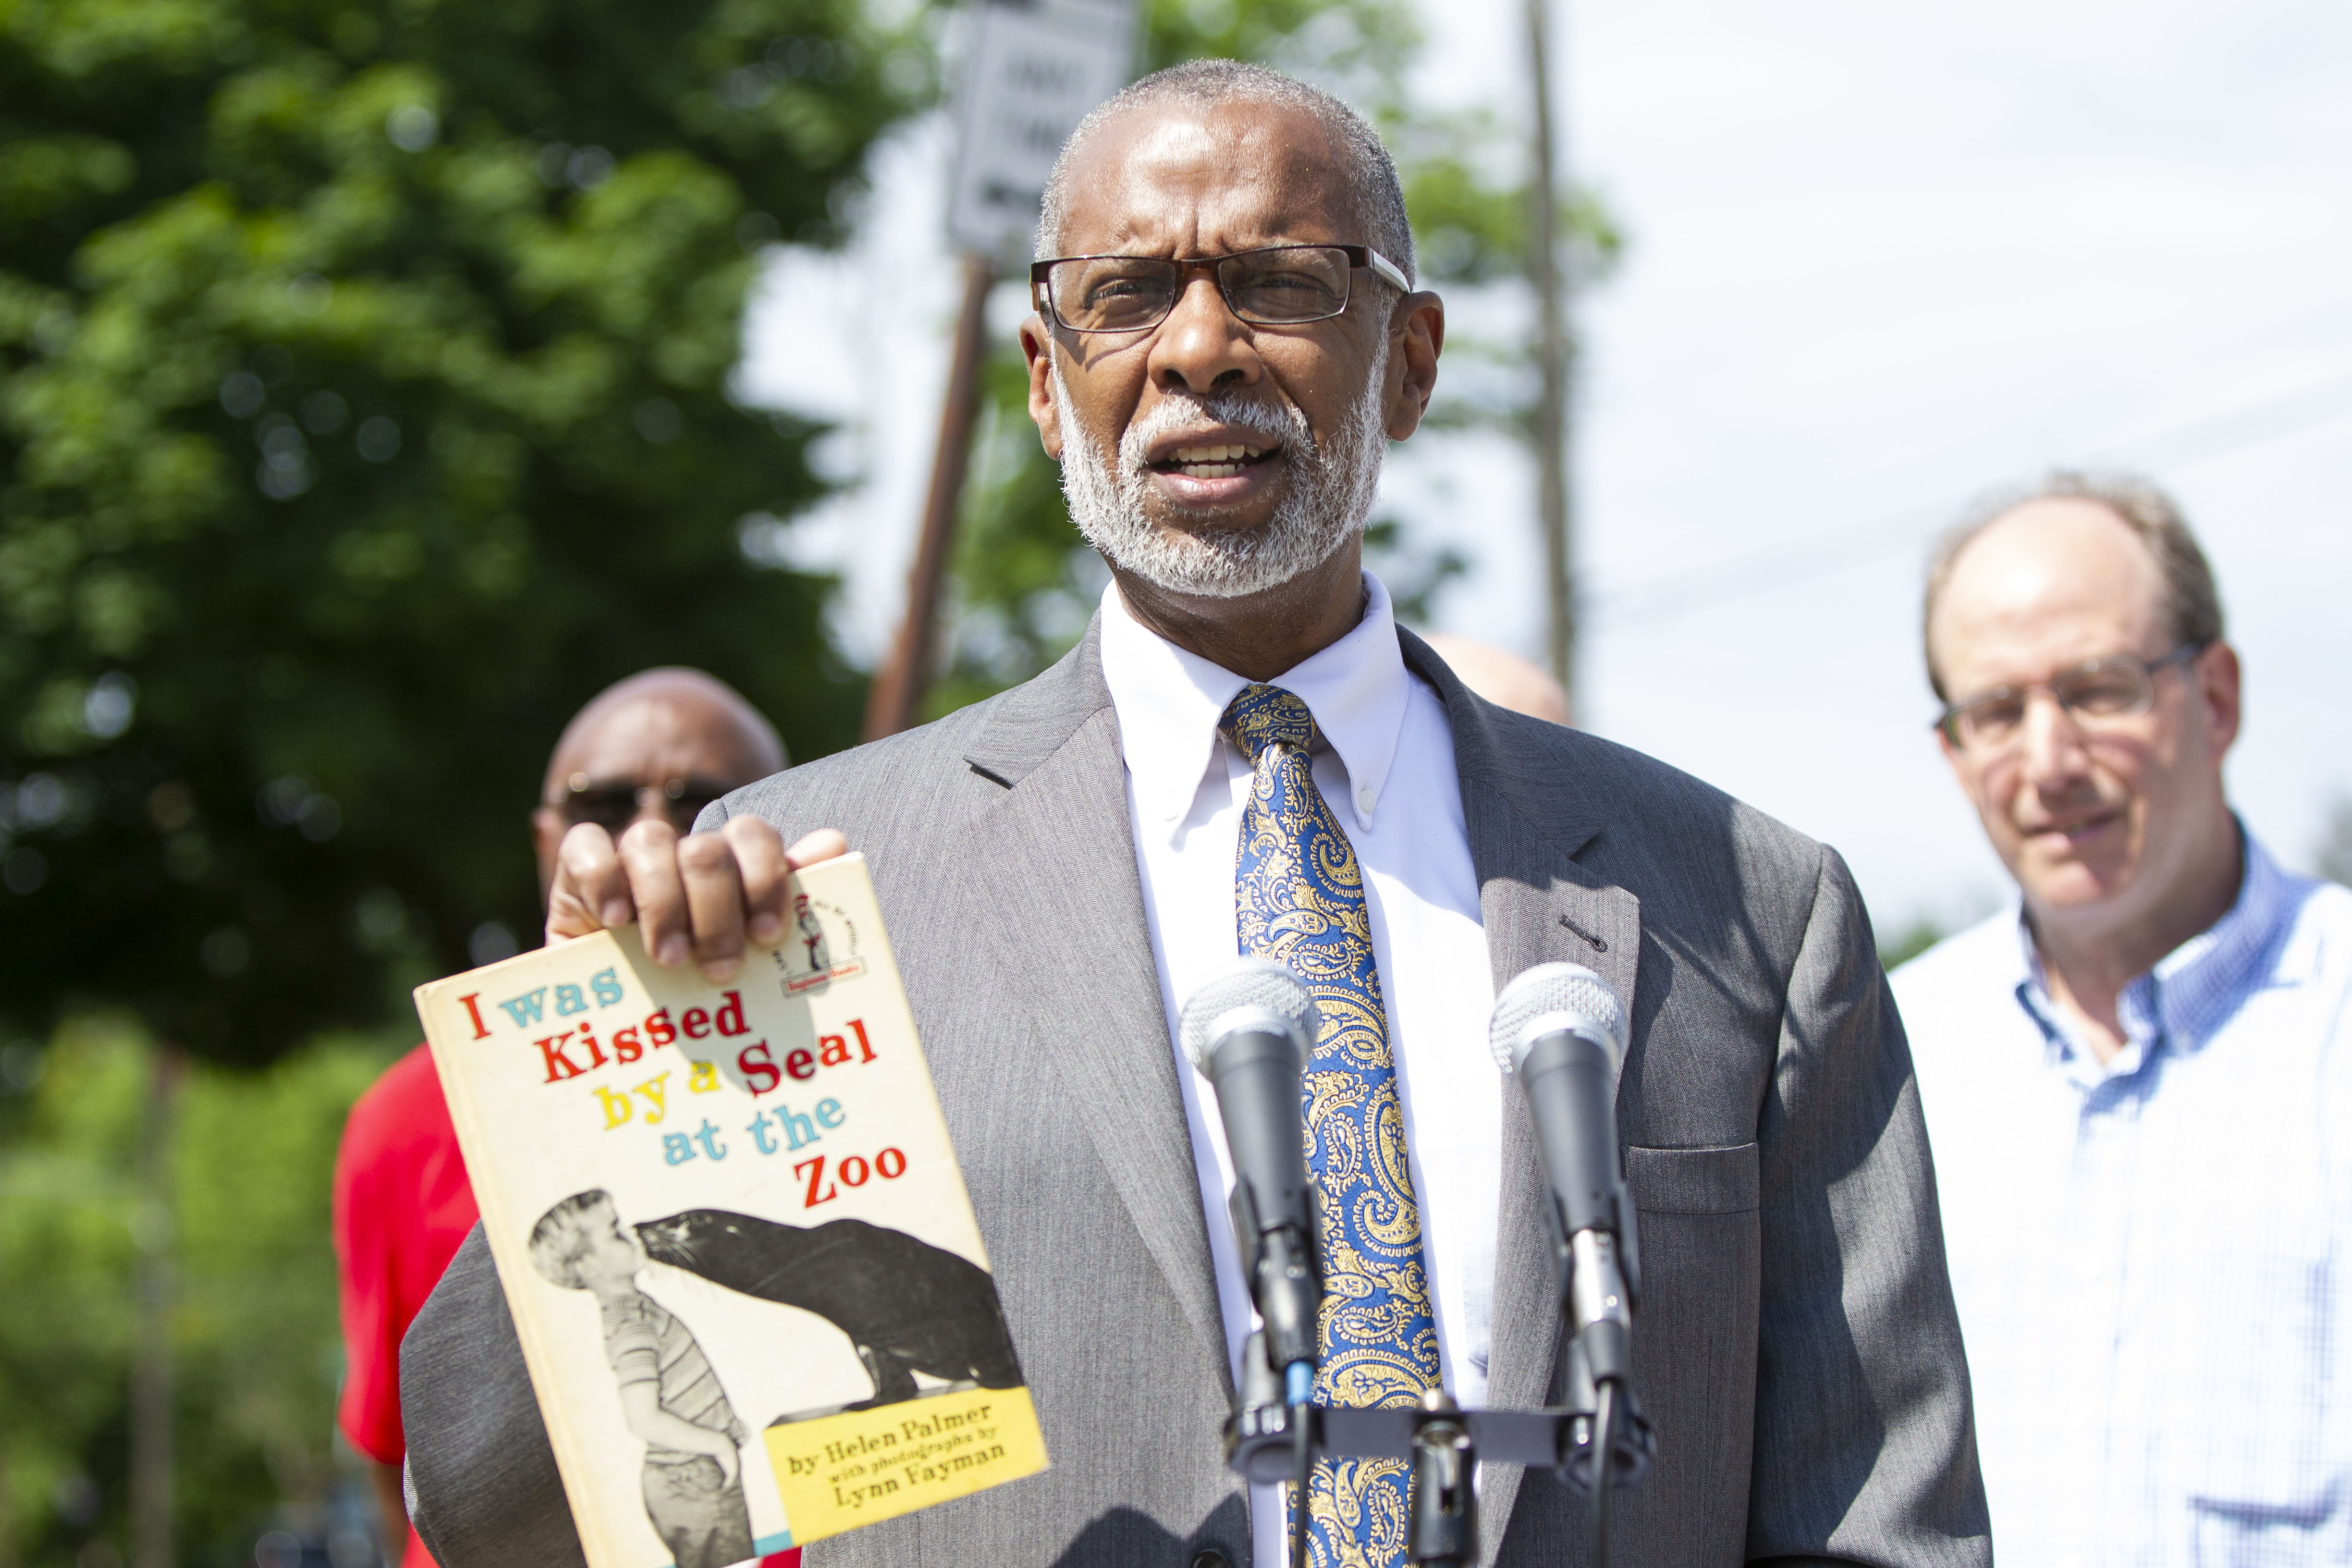 June 7, 2018: Senator Art Haywood held a news conference today to celebrate summer reading and the installment of community bookstands in the district.